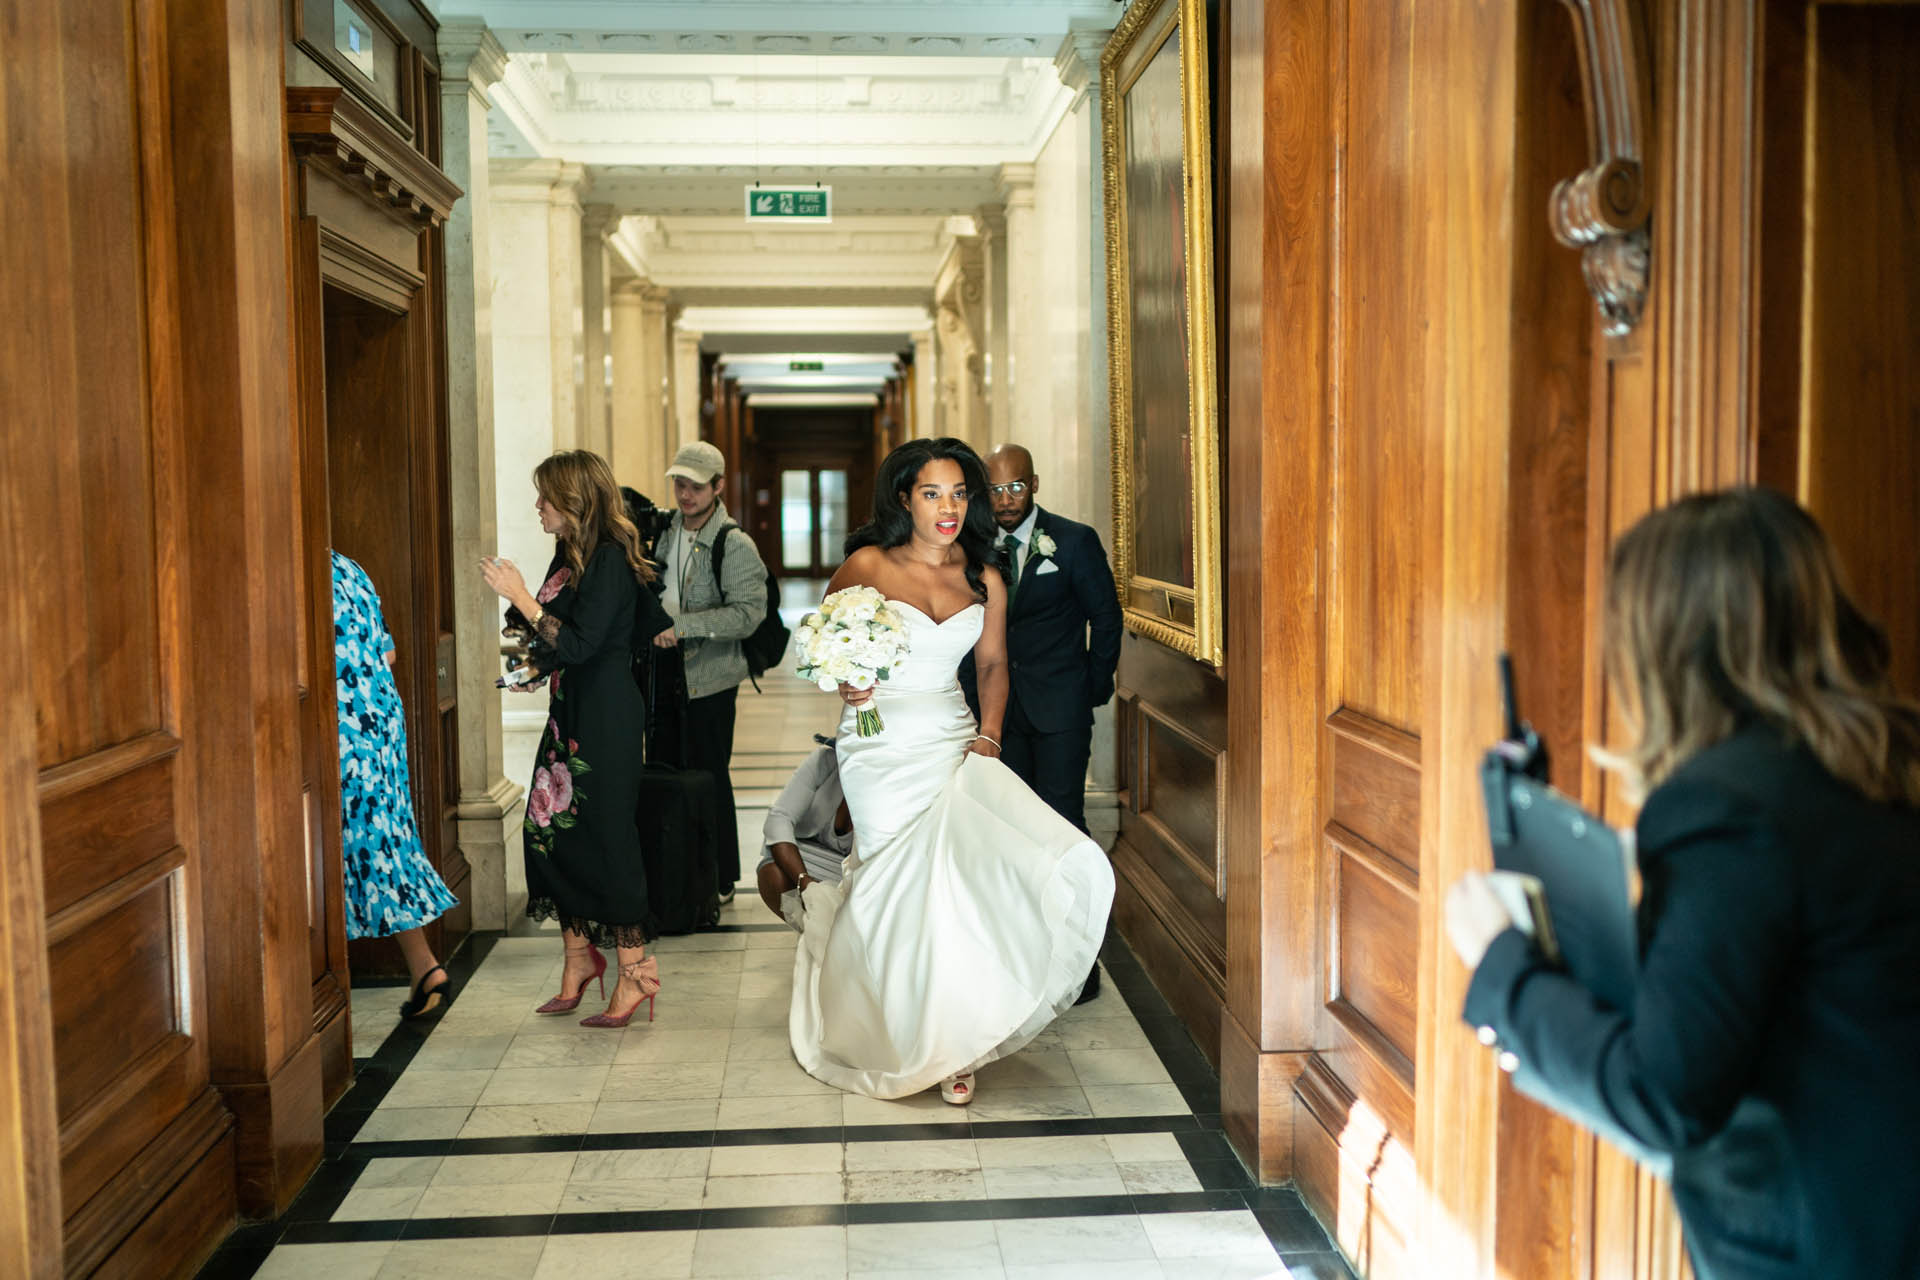 The Old Marylebone Town Hall Elopement Civil Ceremony Image | The Bride is greeted outside the Soho Room by a registrar